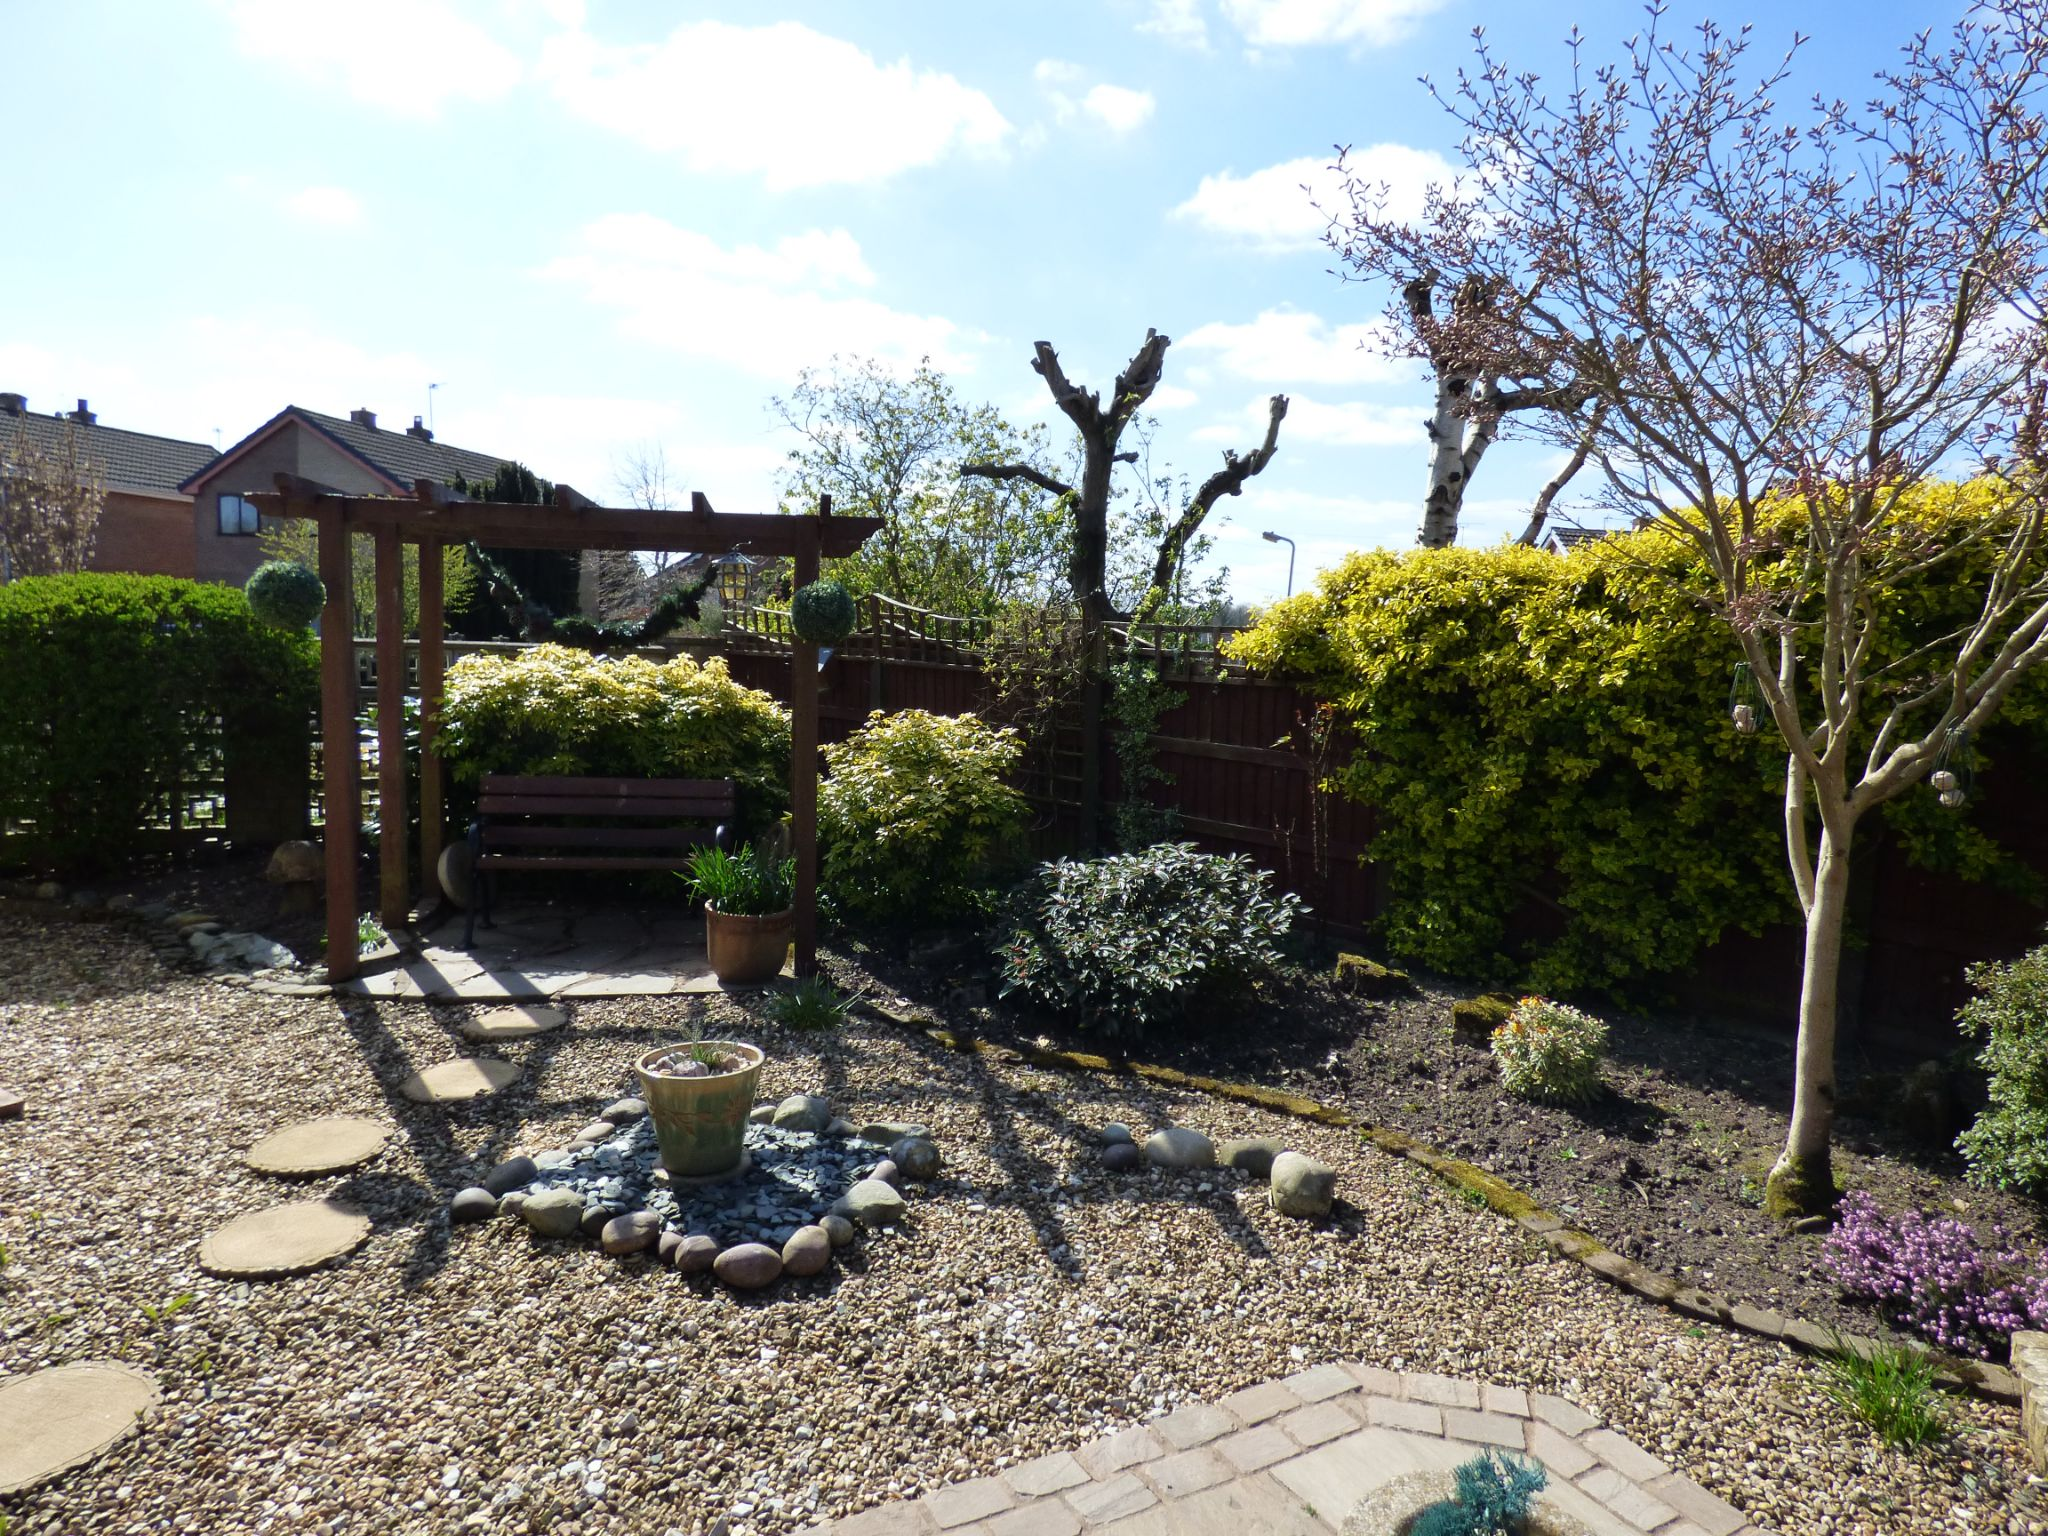 3 Bedroom Detached House For Sale - Rear Garden View 4